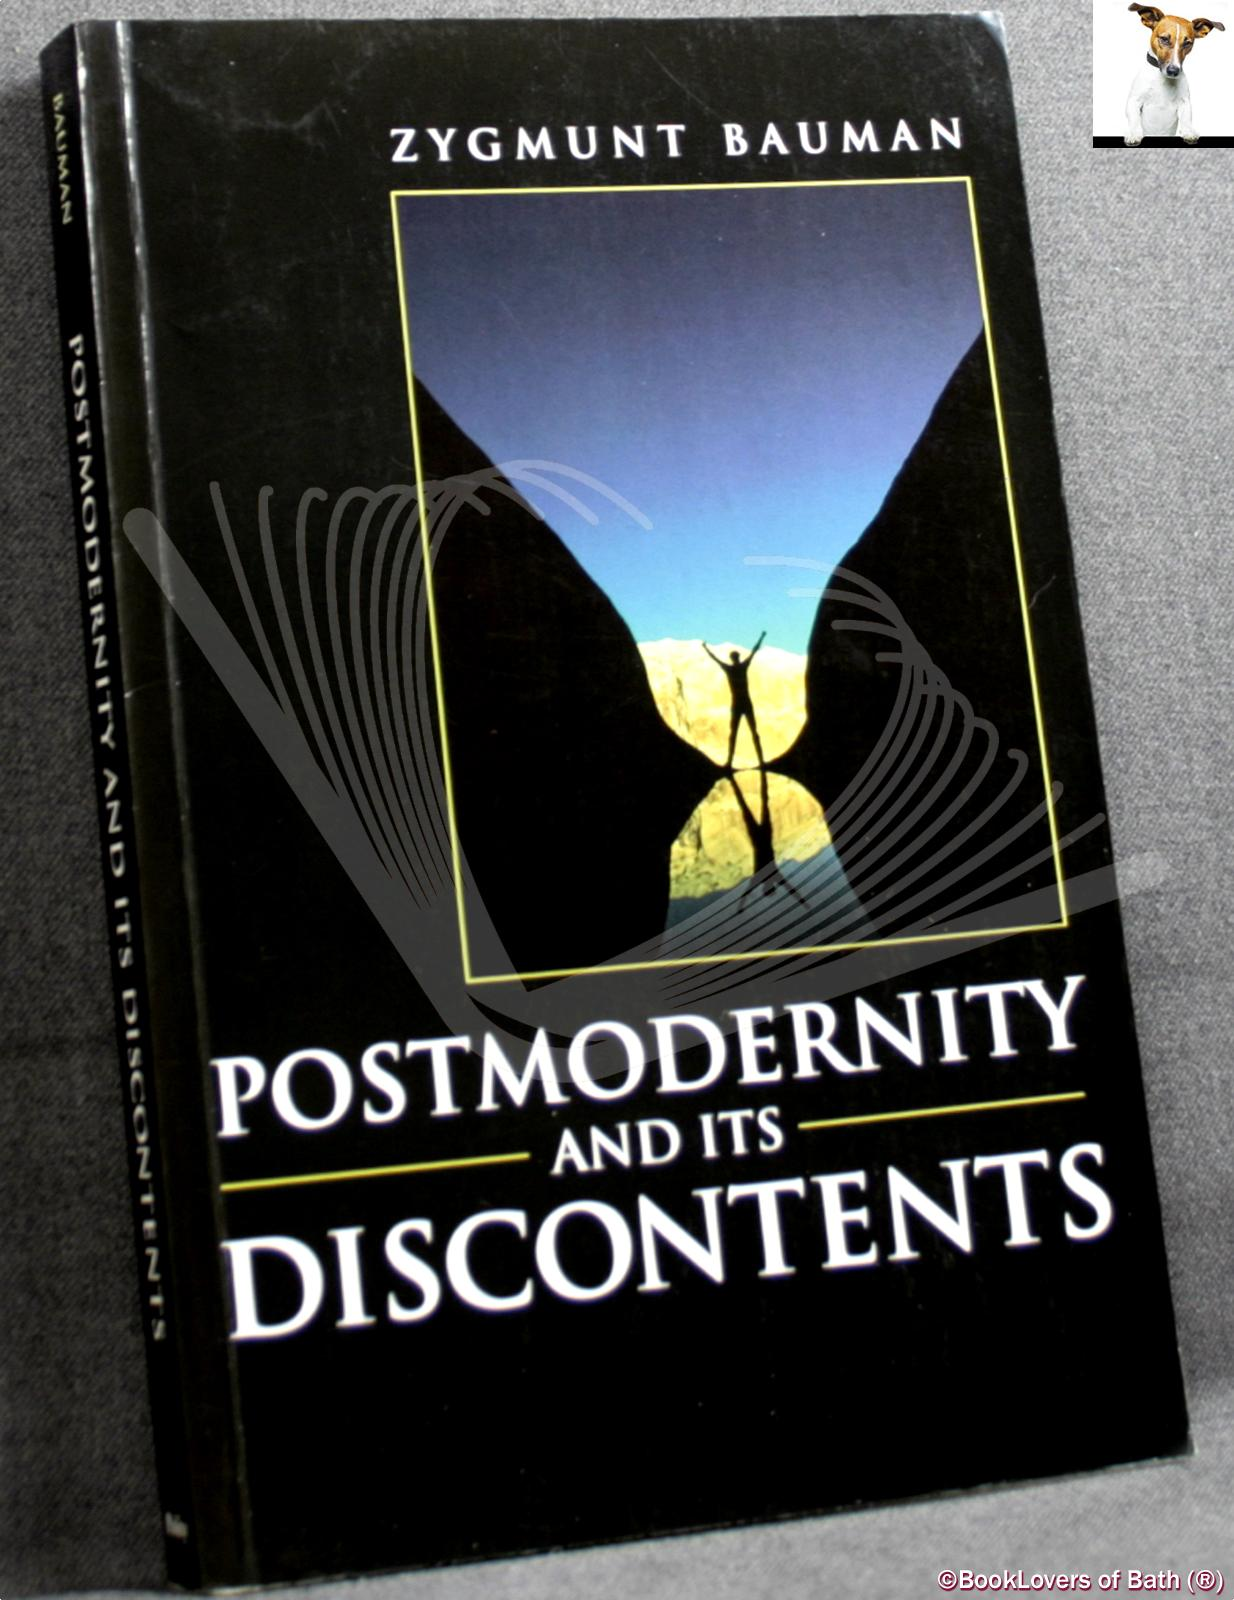 Postmodernity and Its Discontents - Zygmunt Bauman